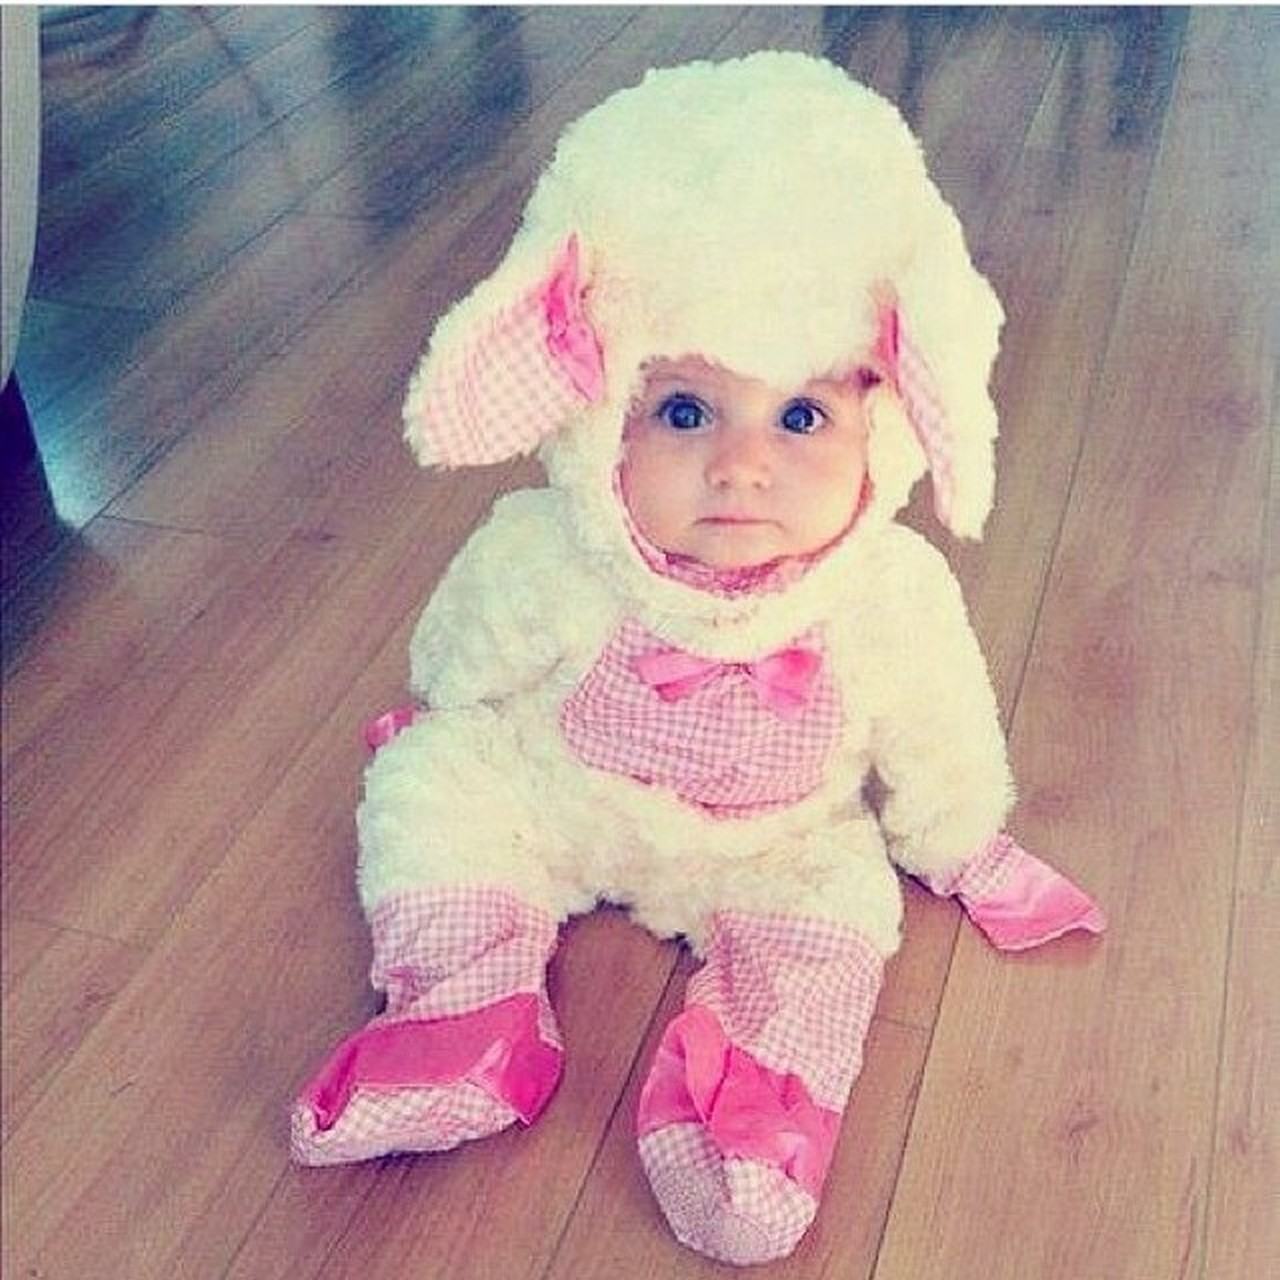 05b23e974c1a Cute baby animal costumes (13) - Fashion Best